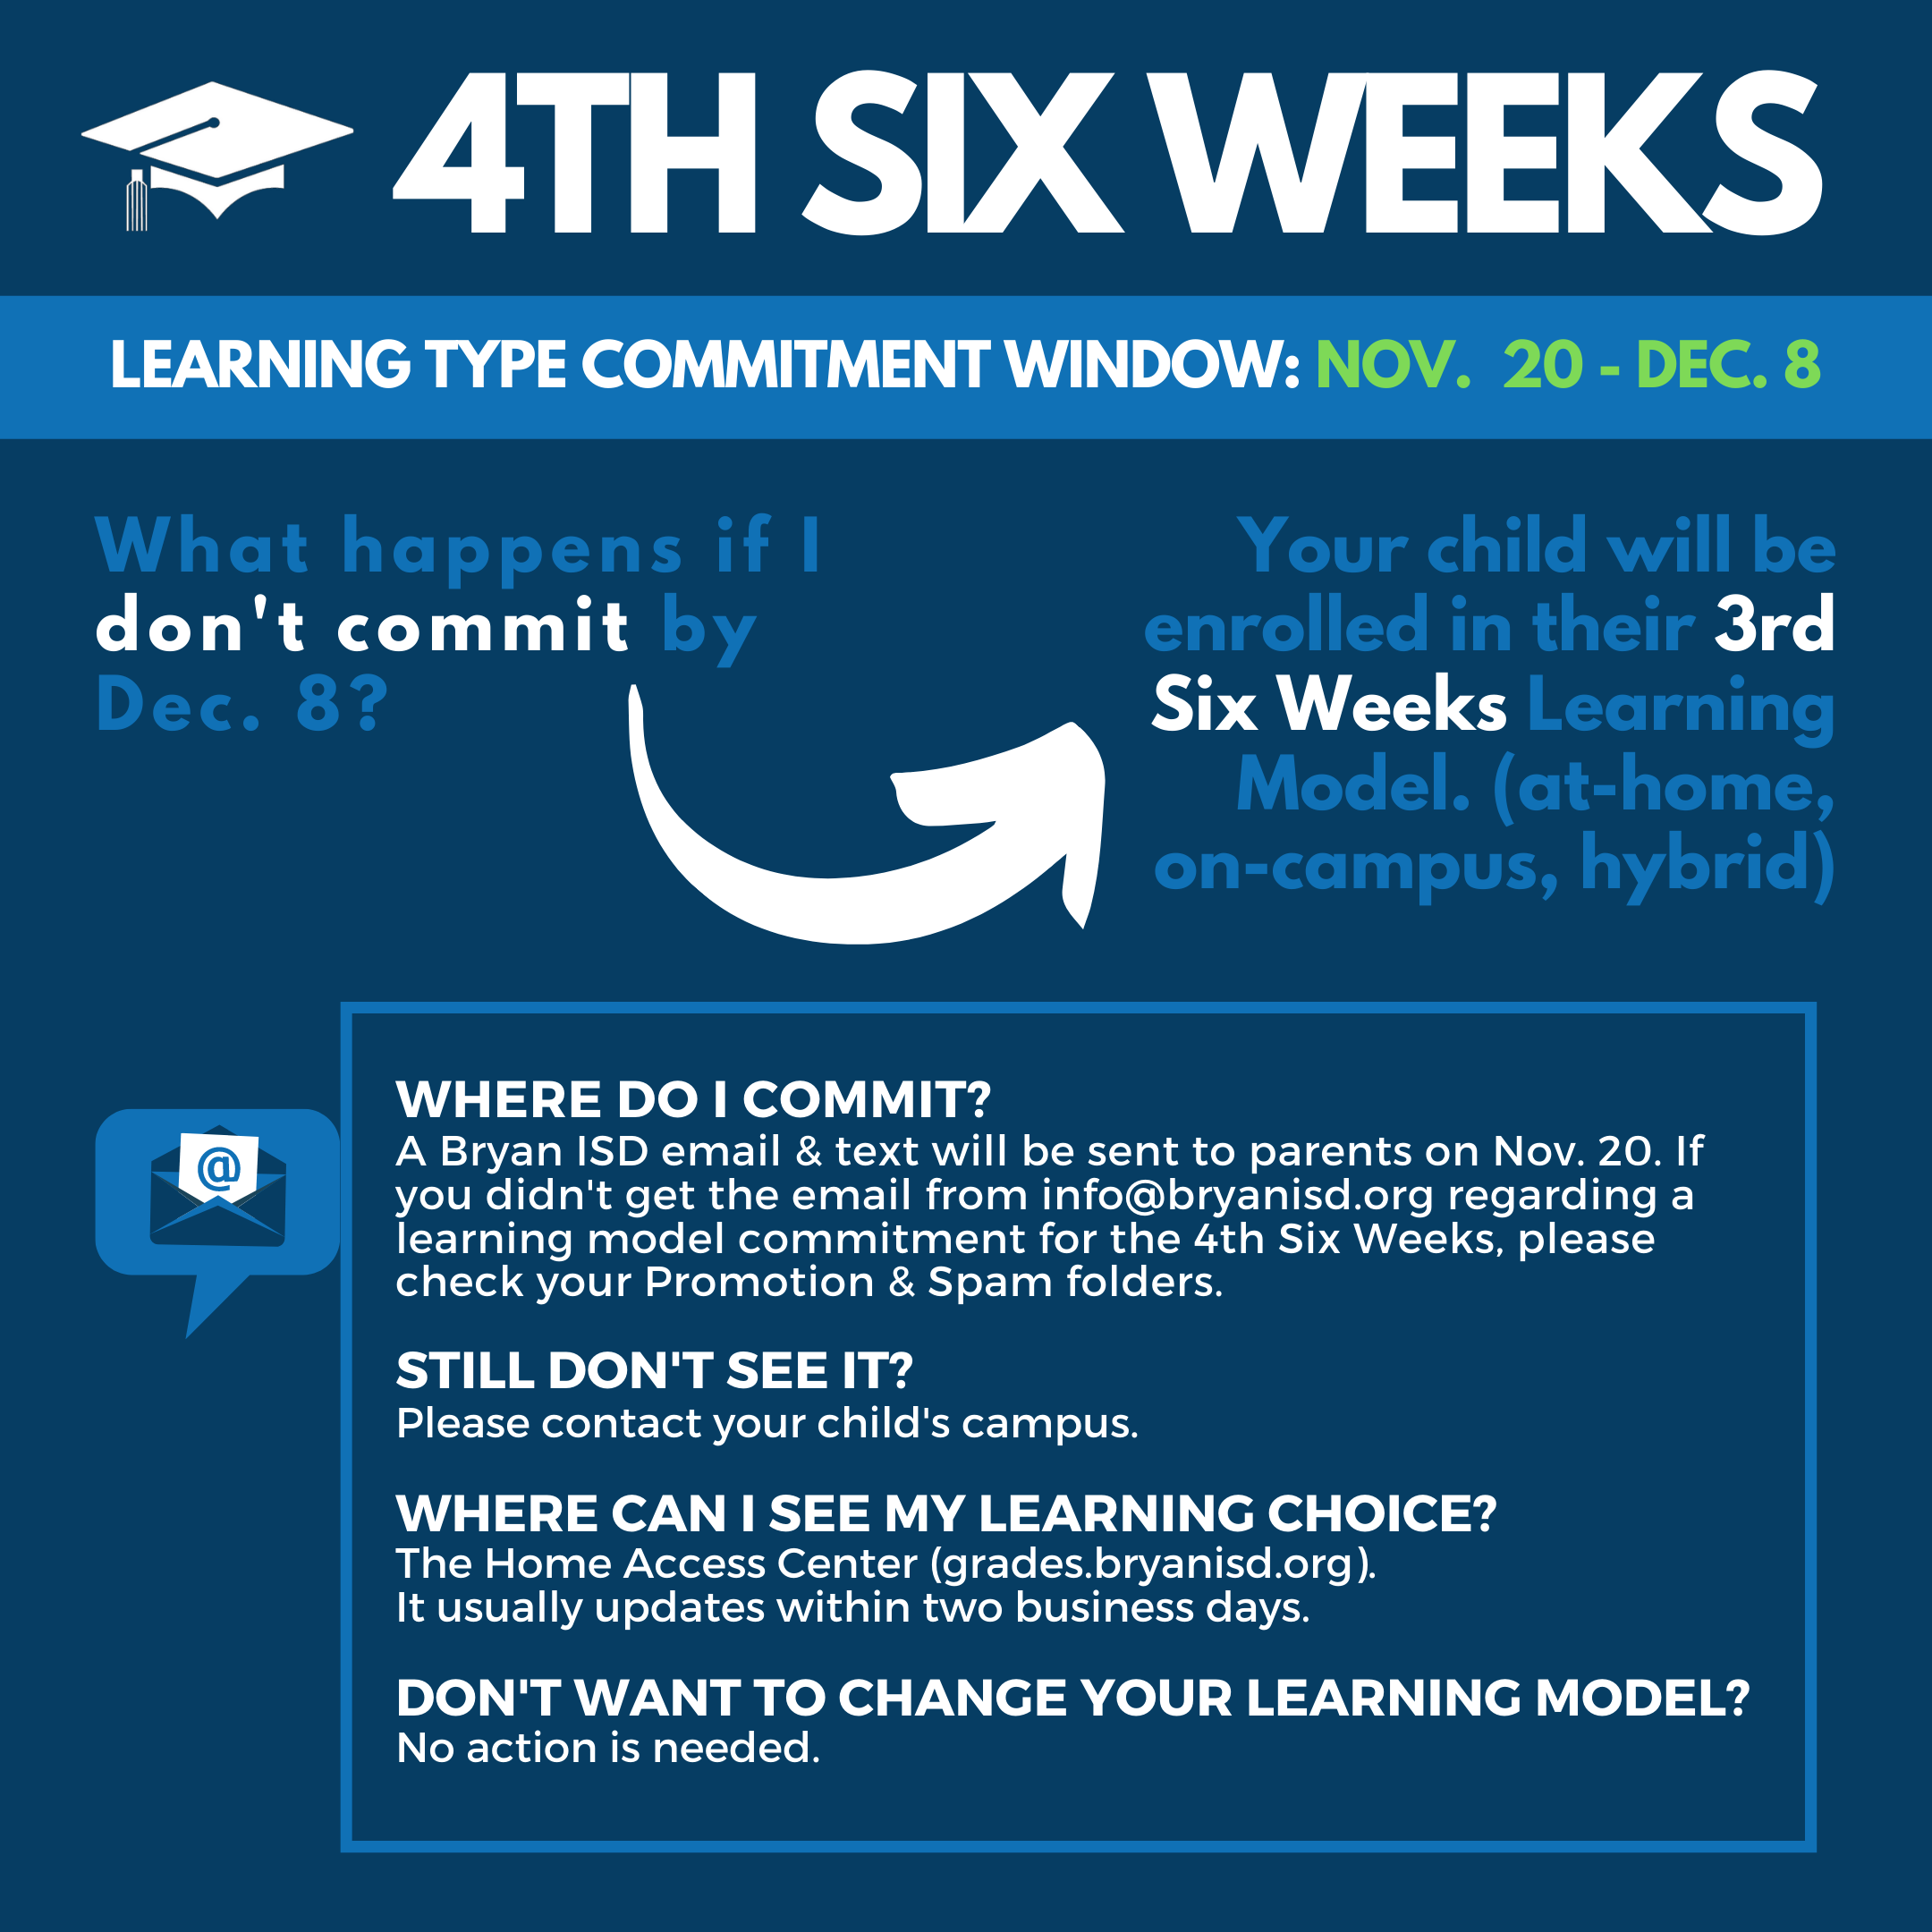 Changing Instructional Models for the 4th Six Weeks